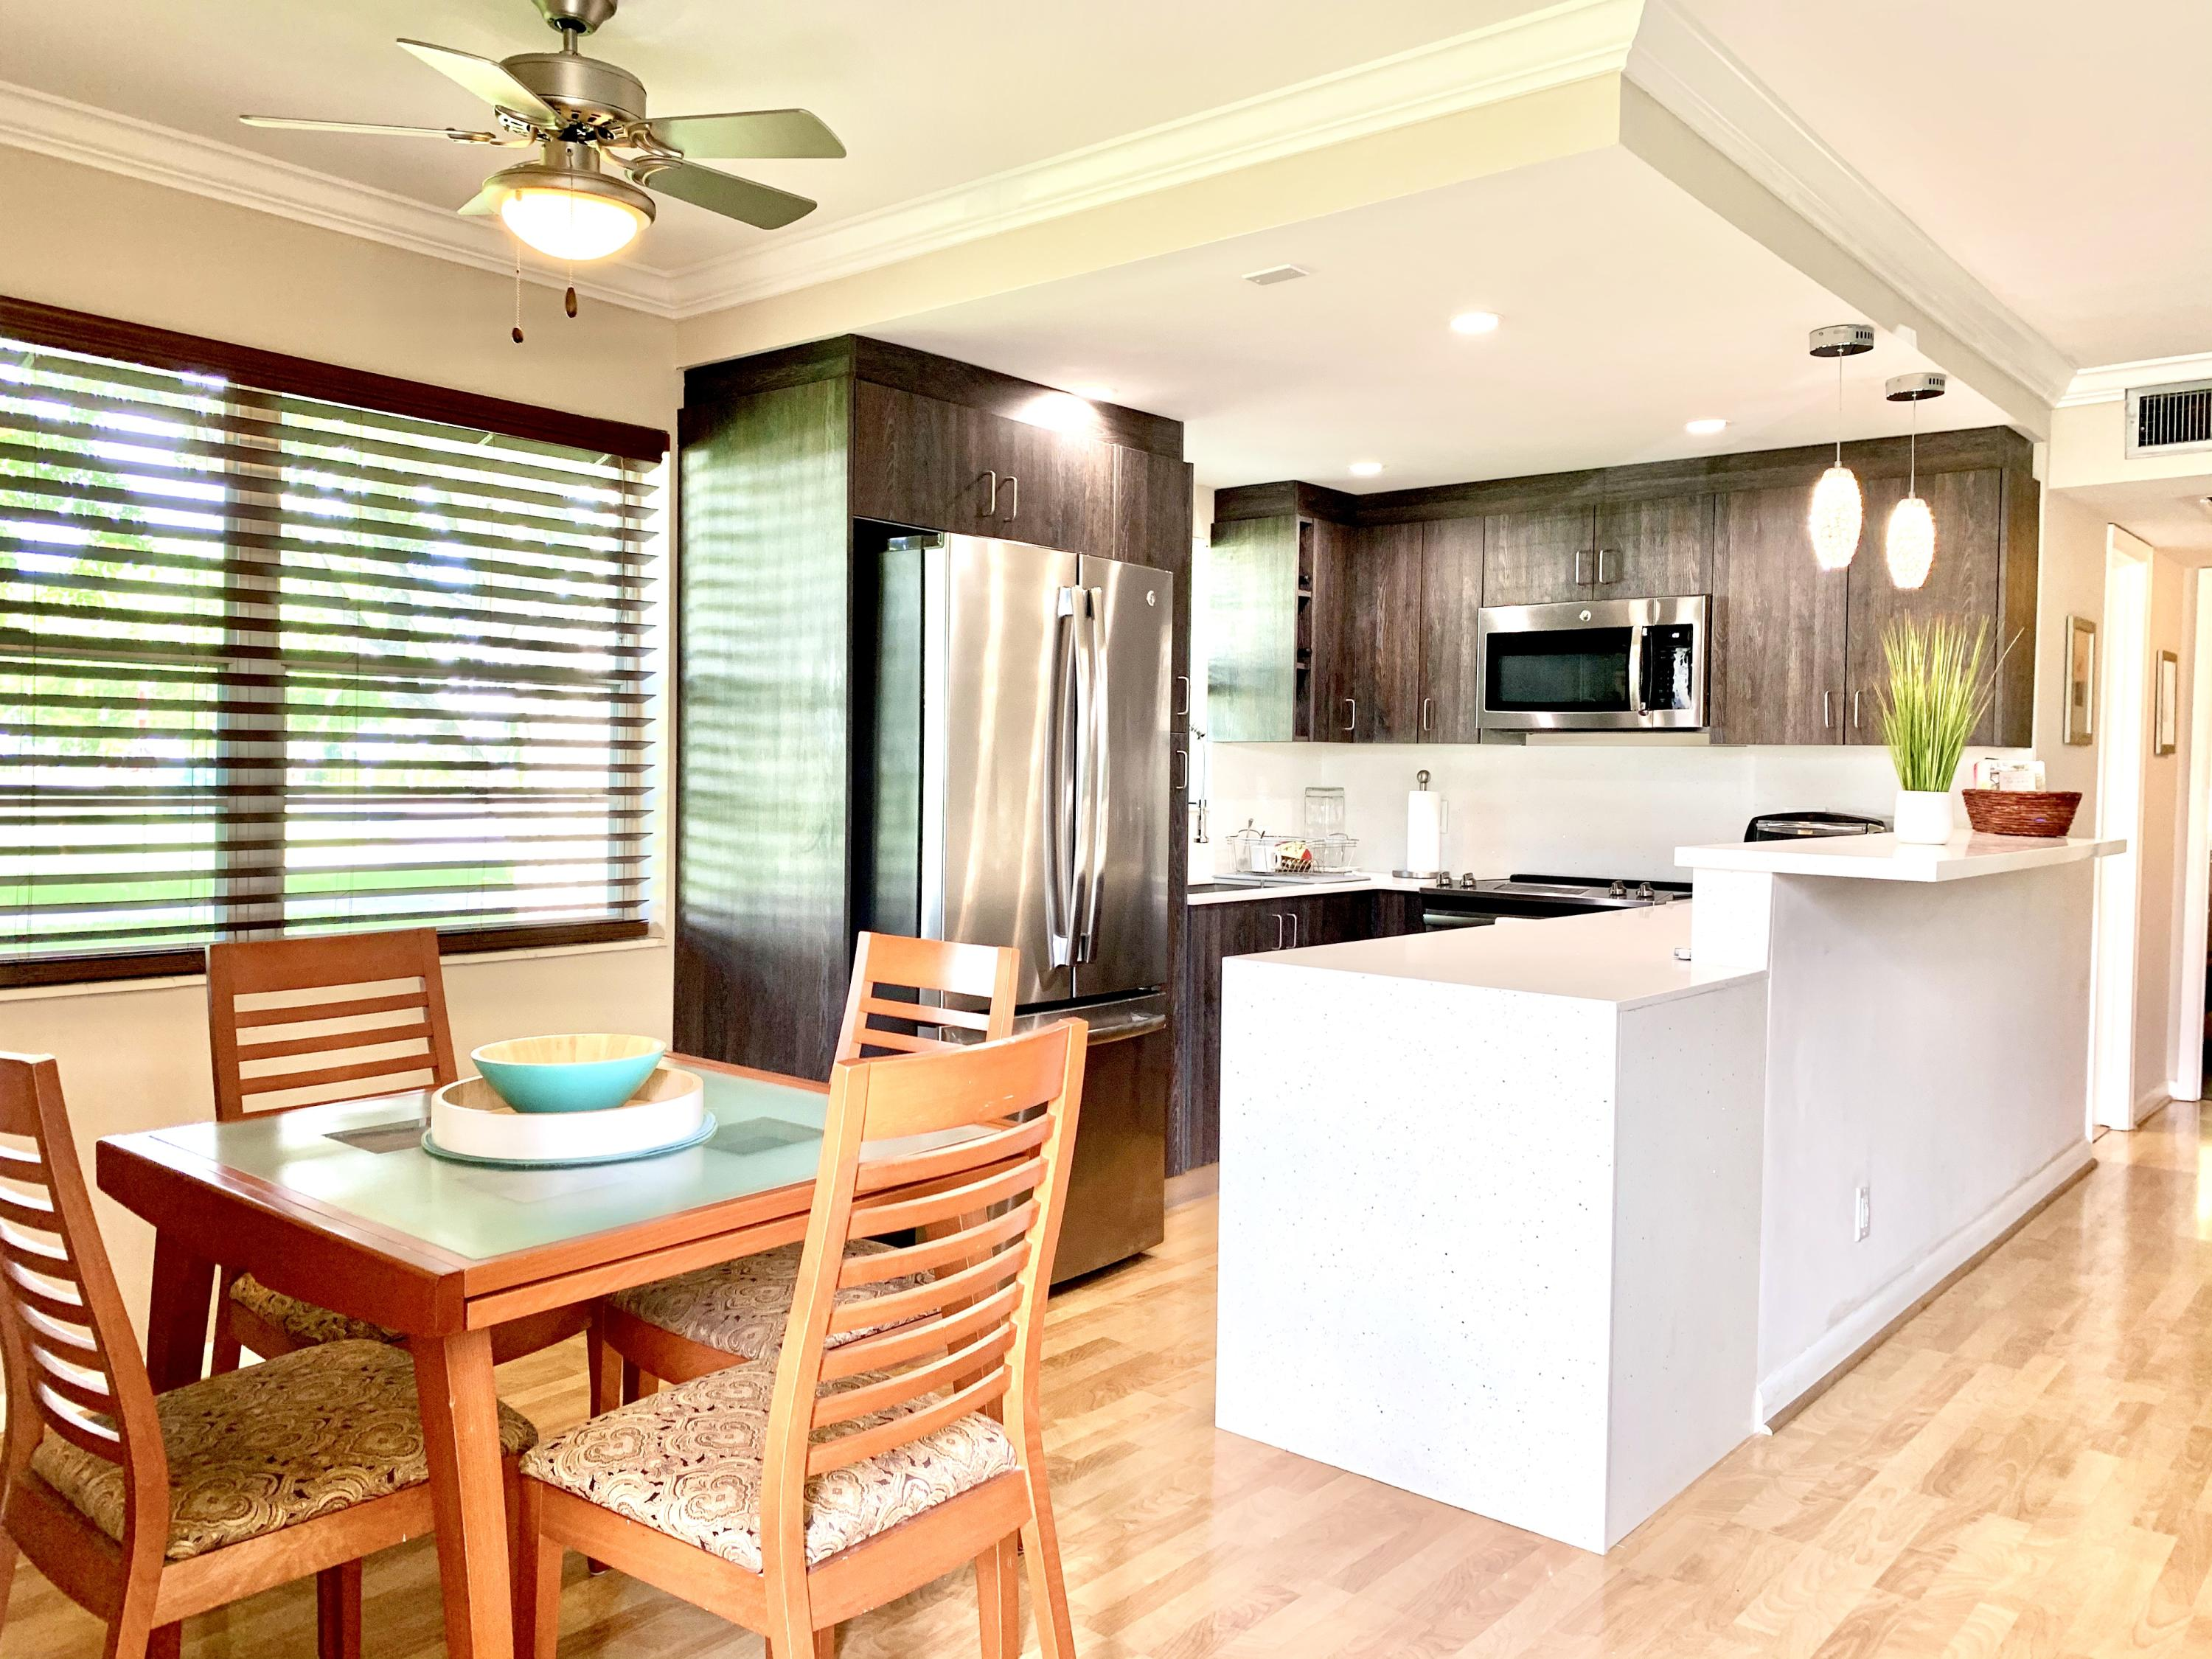 324 Markham O, Deerfield Beach, Florida 33442, 2 Bedrooms Bedrooms, ,1 BathroomBathrooms,Residential,For Sale,Markham O,RX-10570113